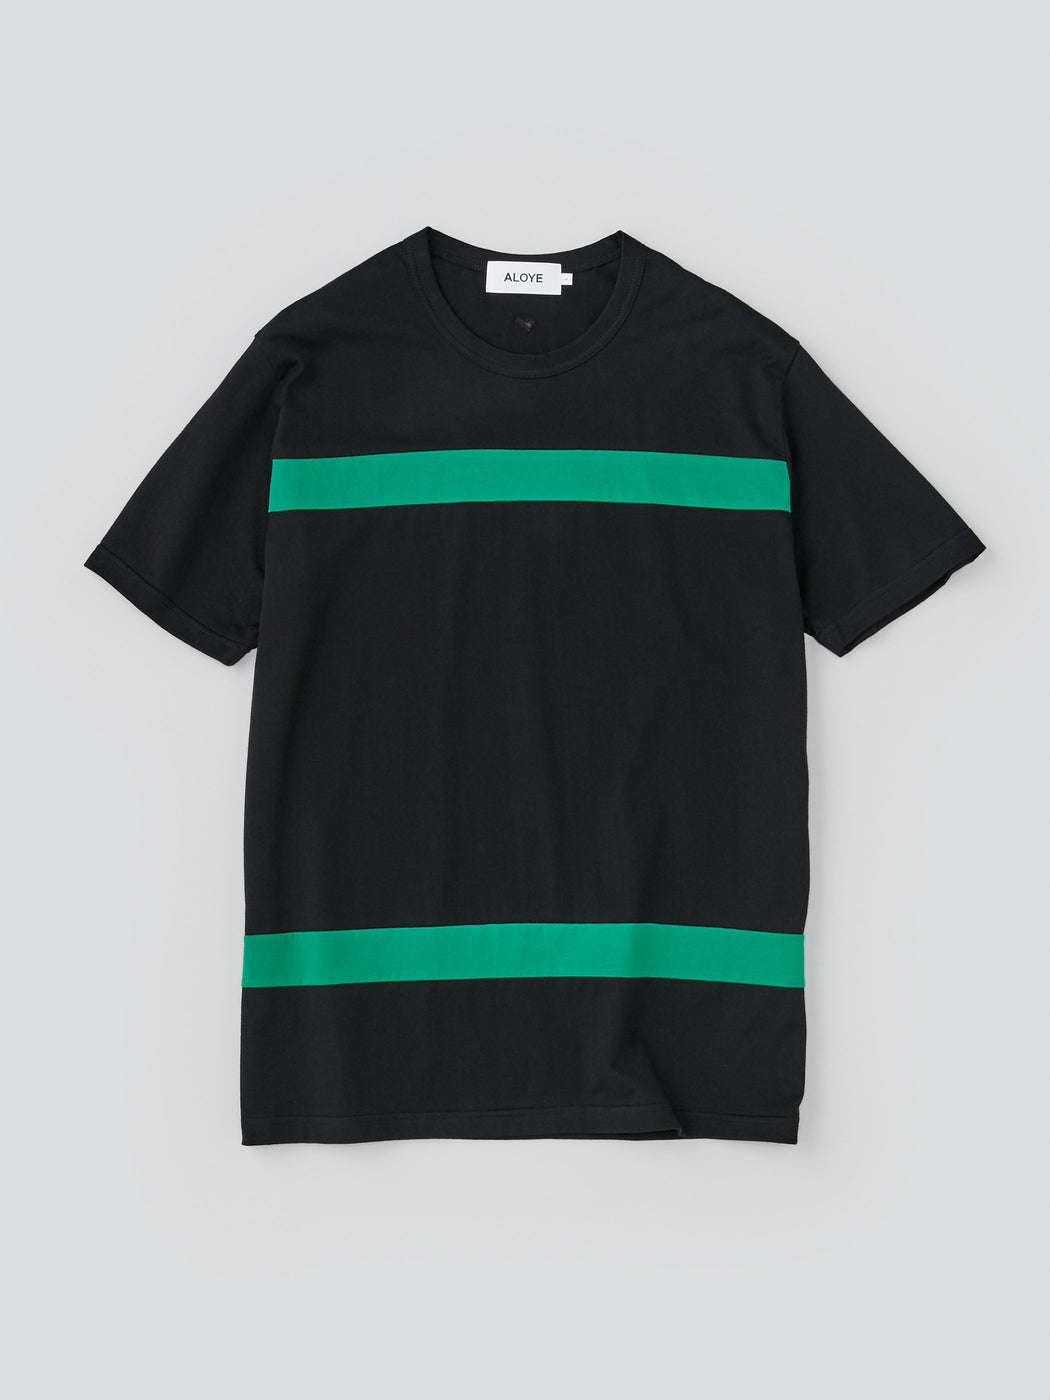 ALOYE Color Blocks Men's Short Sleeve T-shirt Black-Green Color block